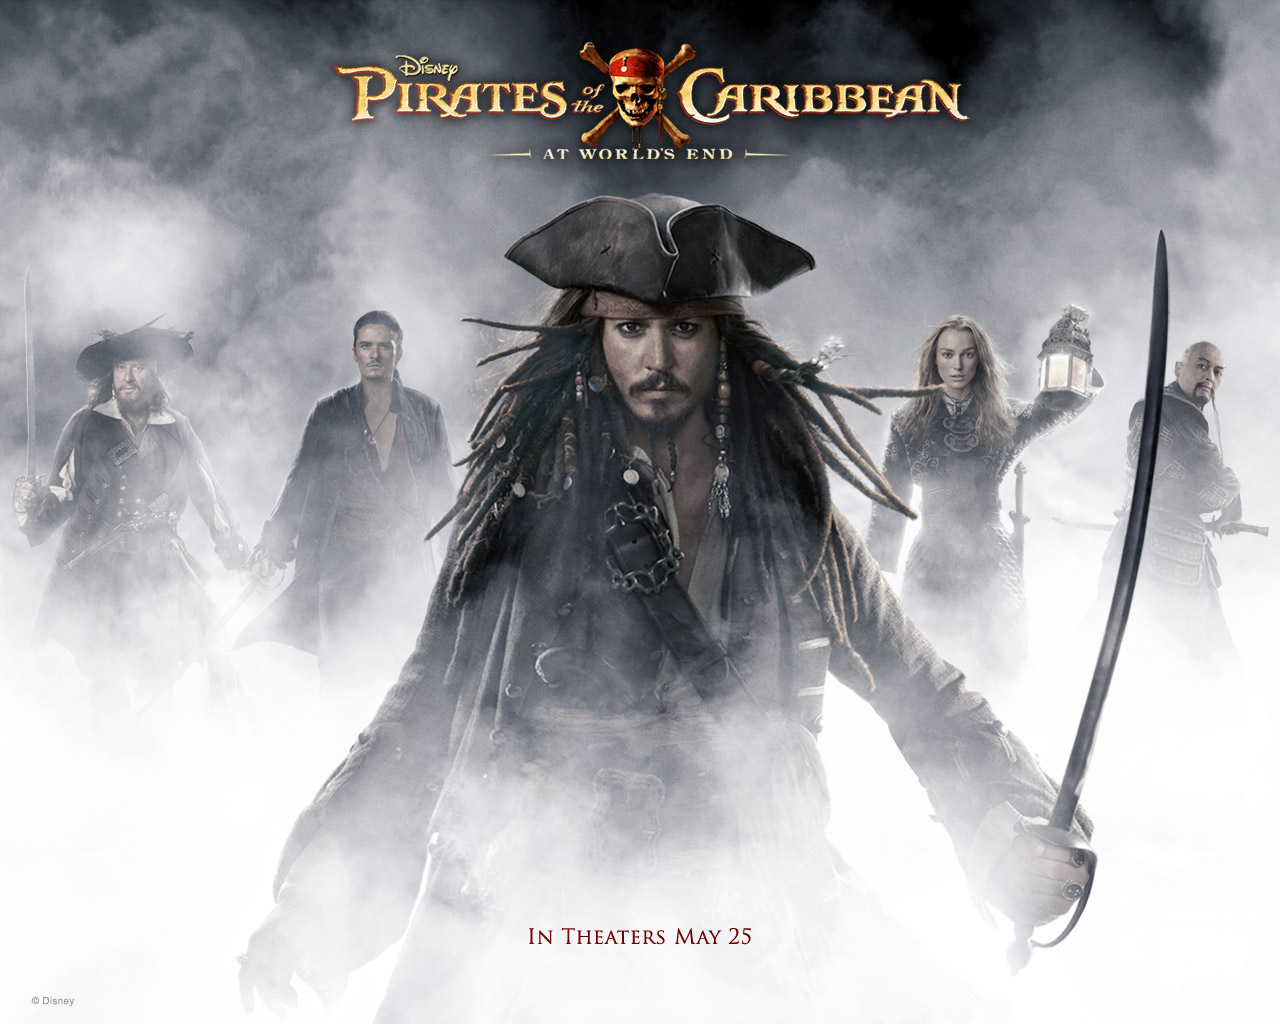 Jack-Sparrow-pirates-of-the-caribbean-35087_1280_1024